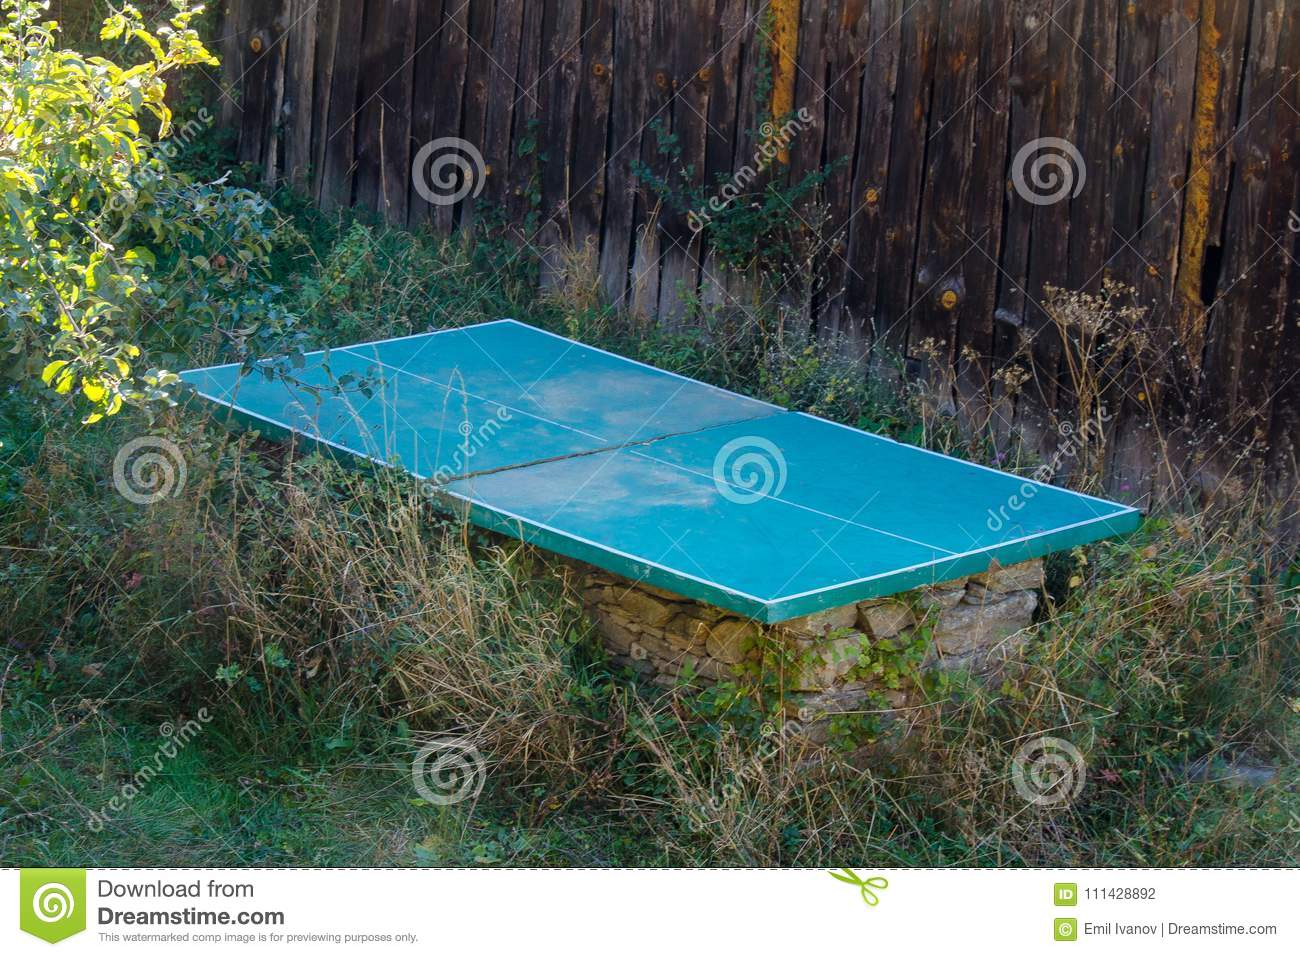 Abandoned Ping Pong Table In Overgrown Garden Stock Photo - Image